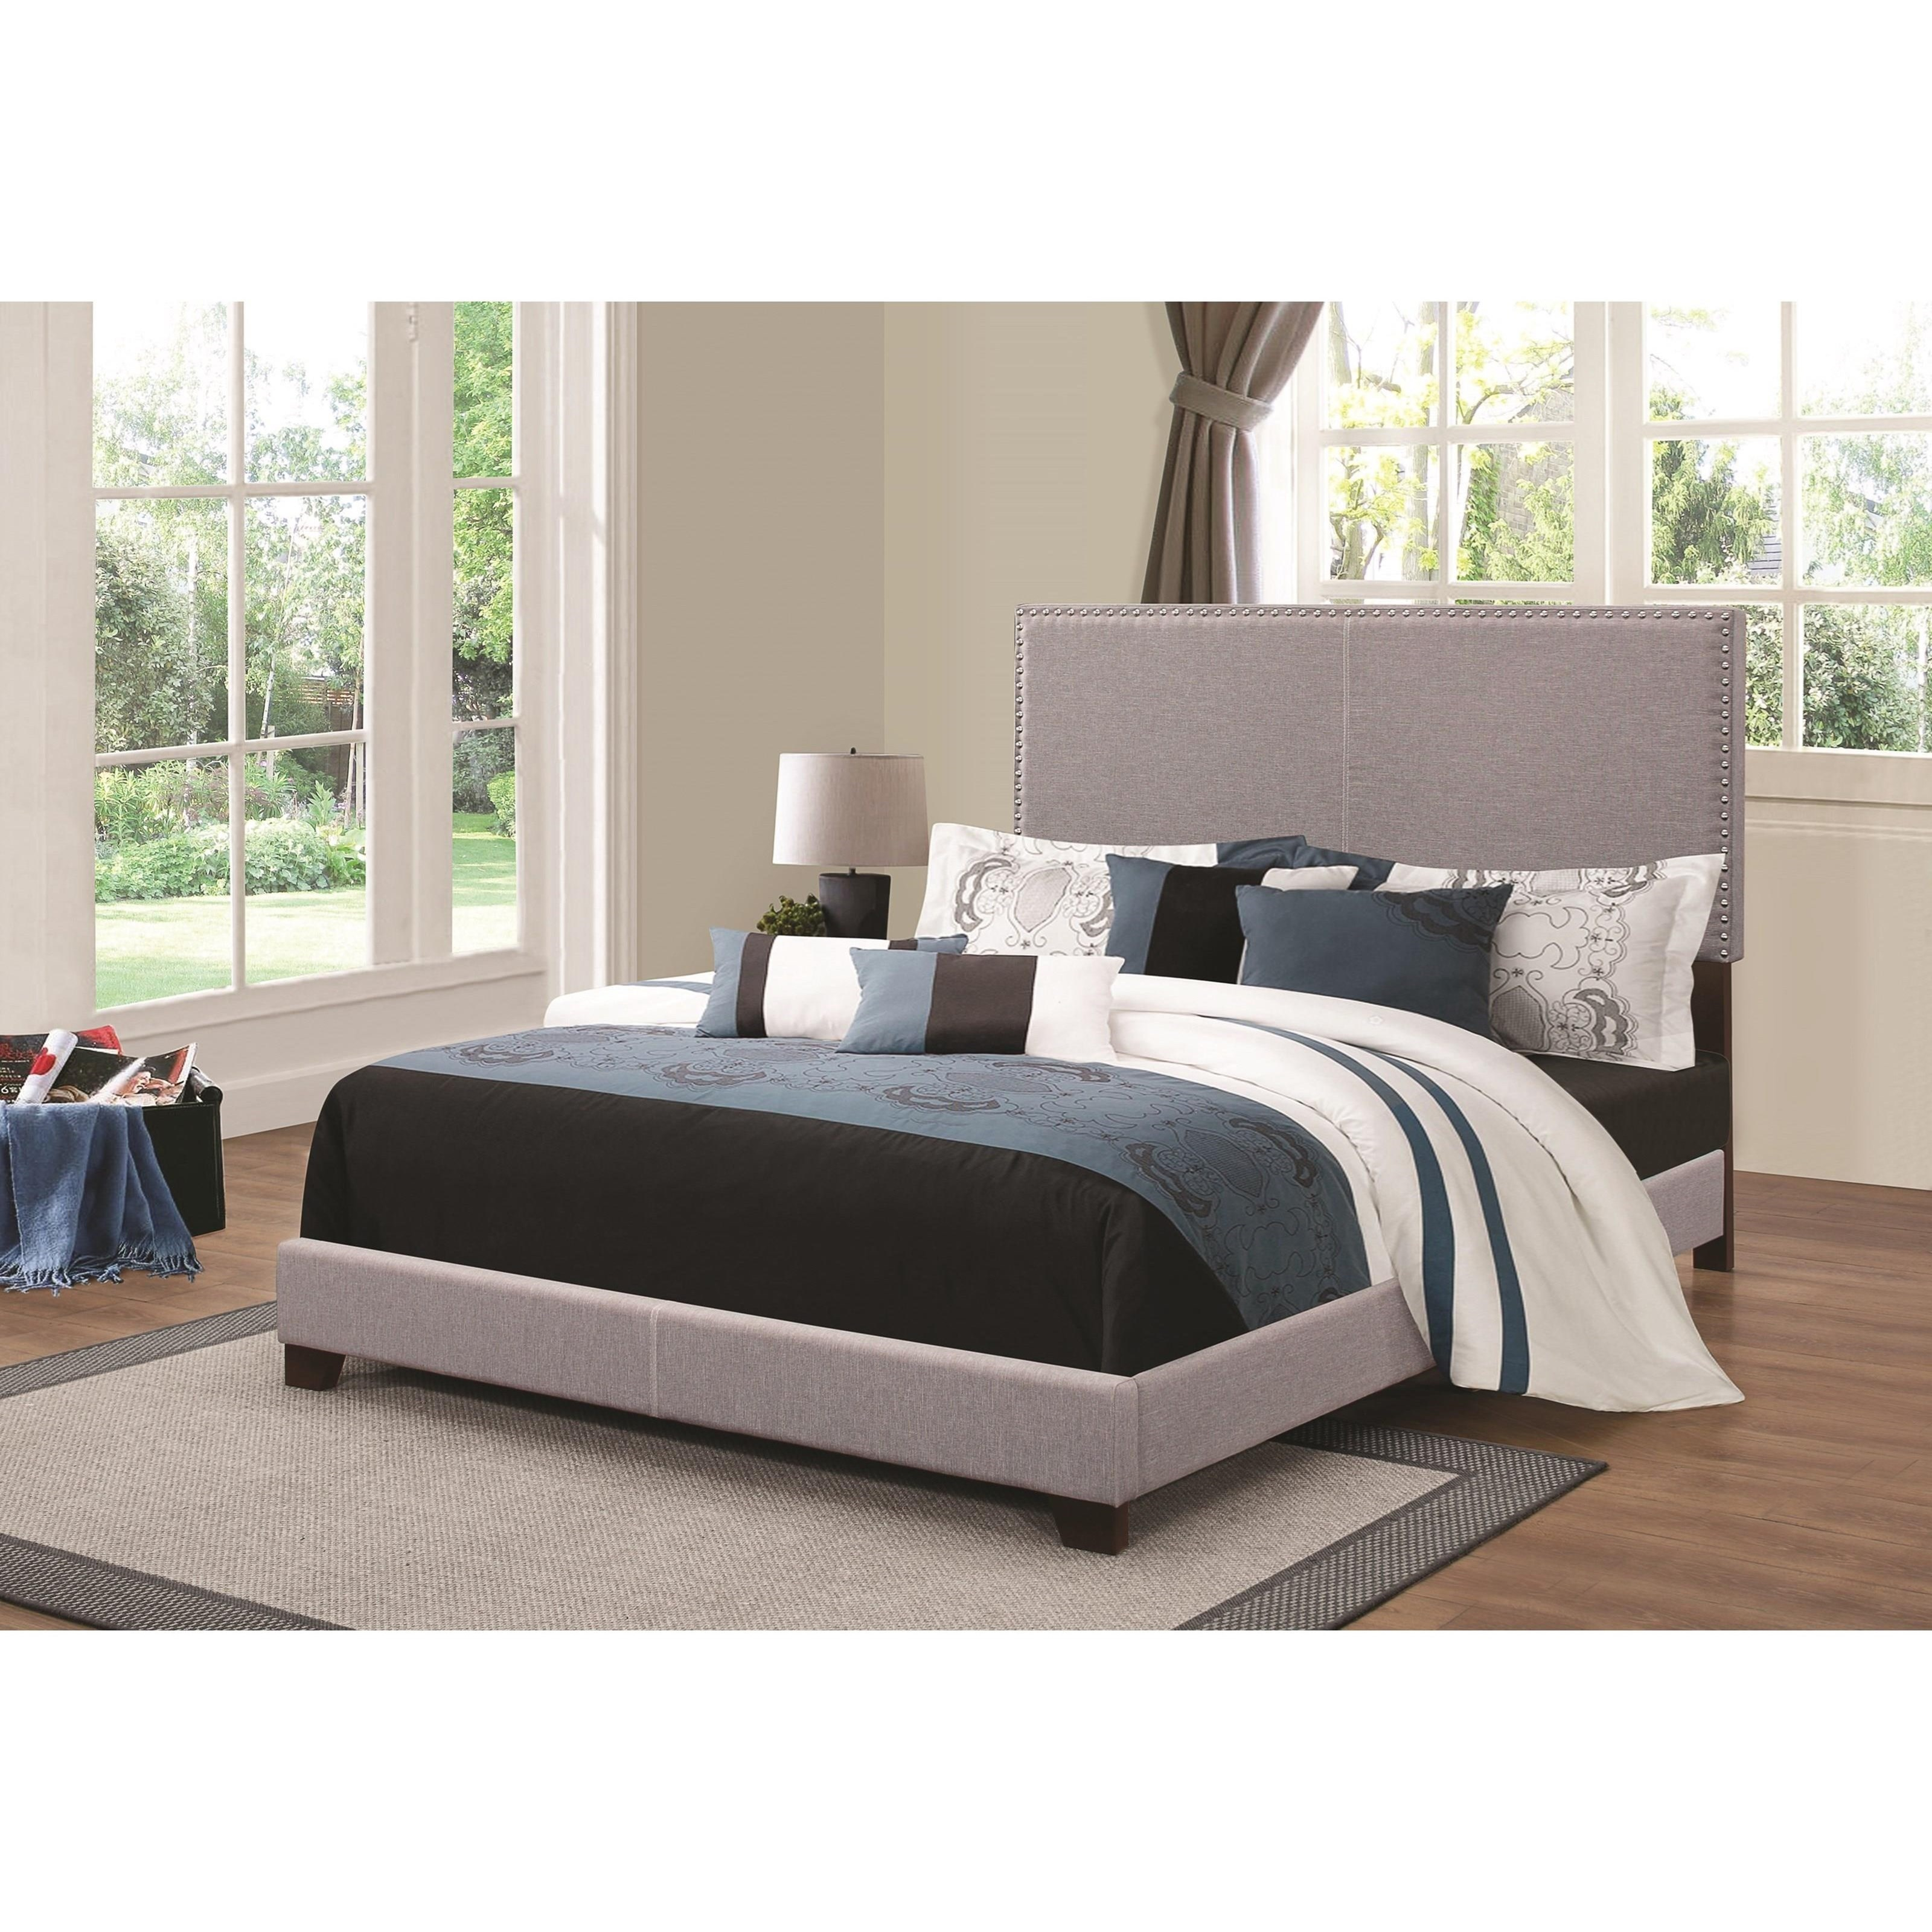 Upholstered Beds Cal King Bed by Coaster at Northeast Factory Direct